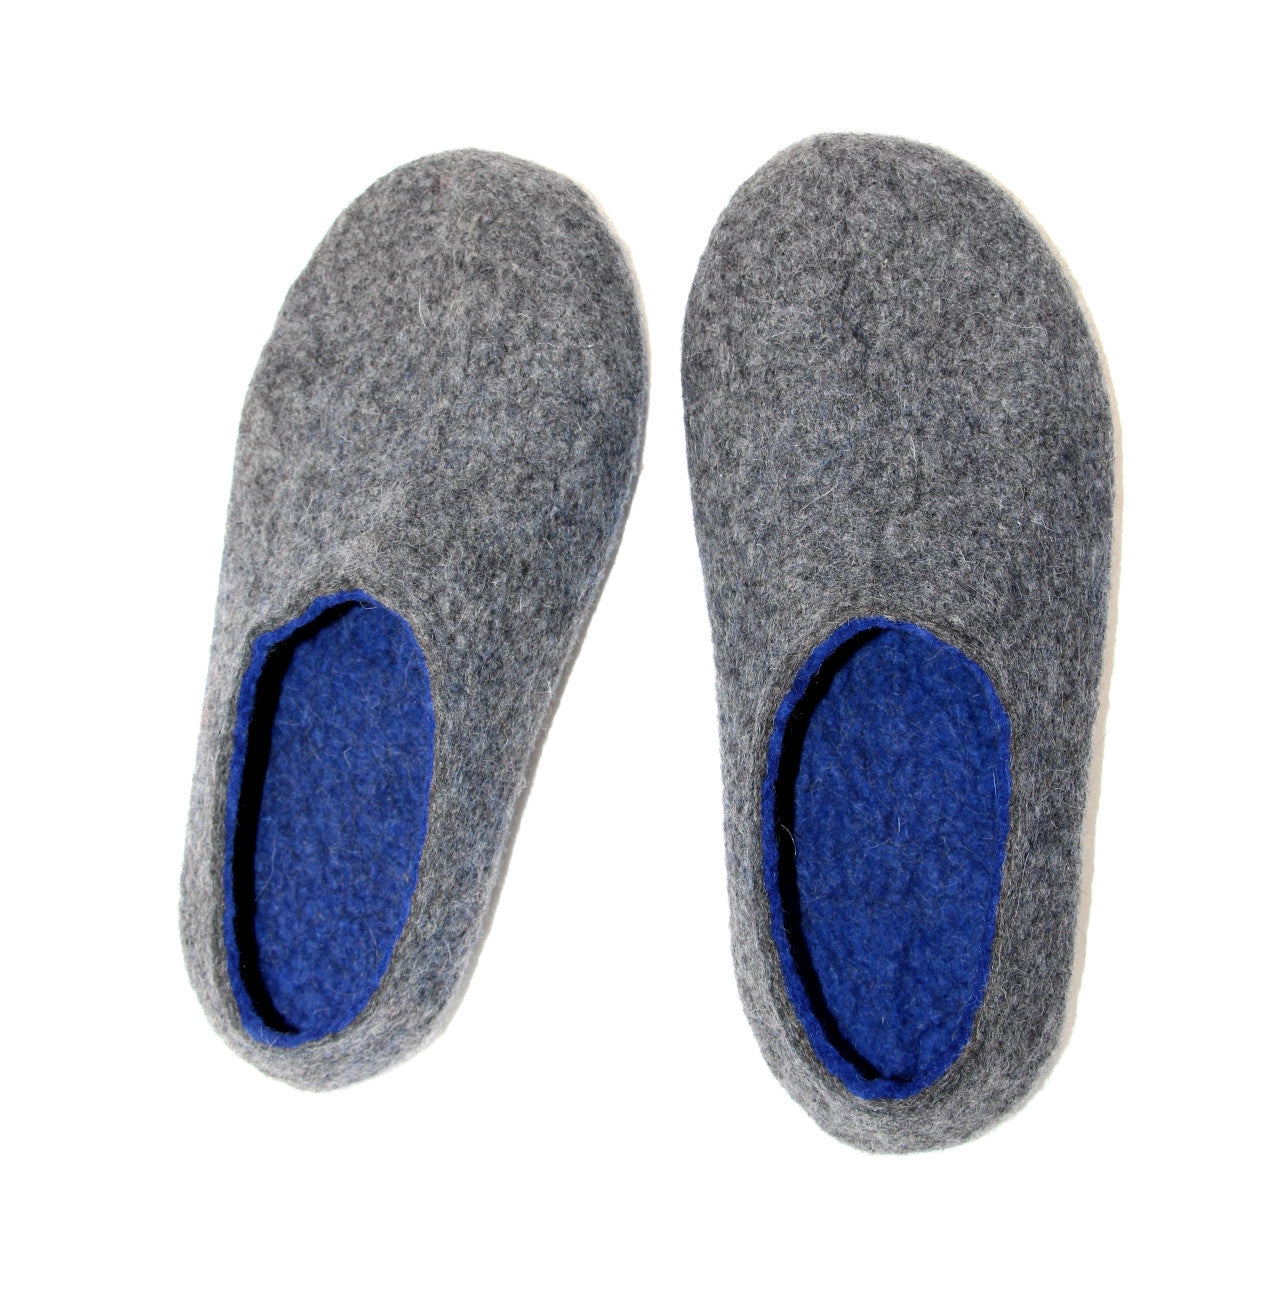 Mens Felt House Shoes Grey Navy Blue Rubber Sole - Wool Walker  - 2